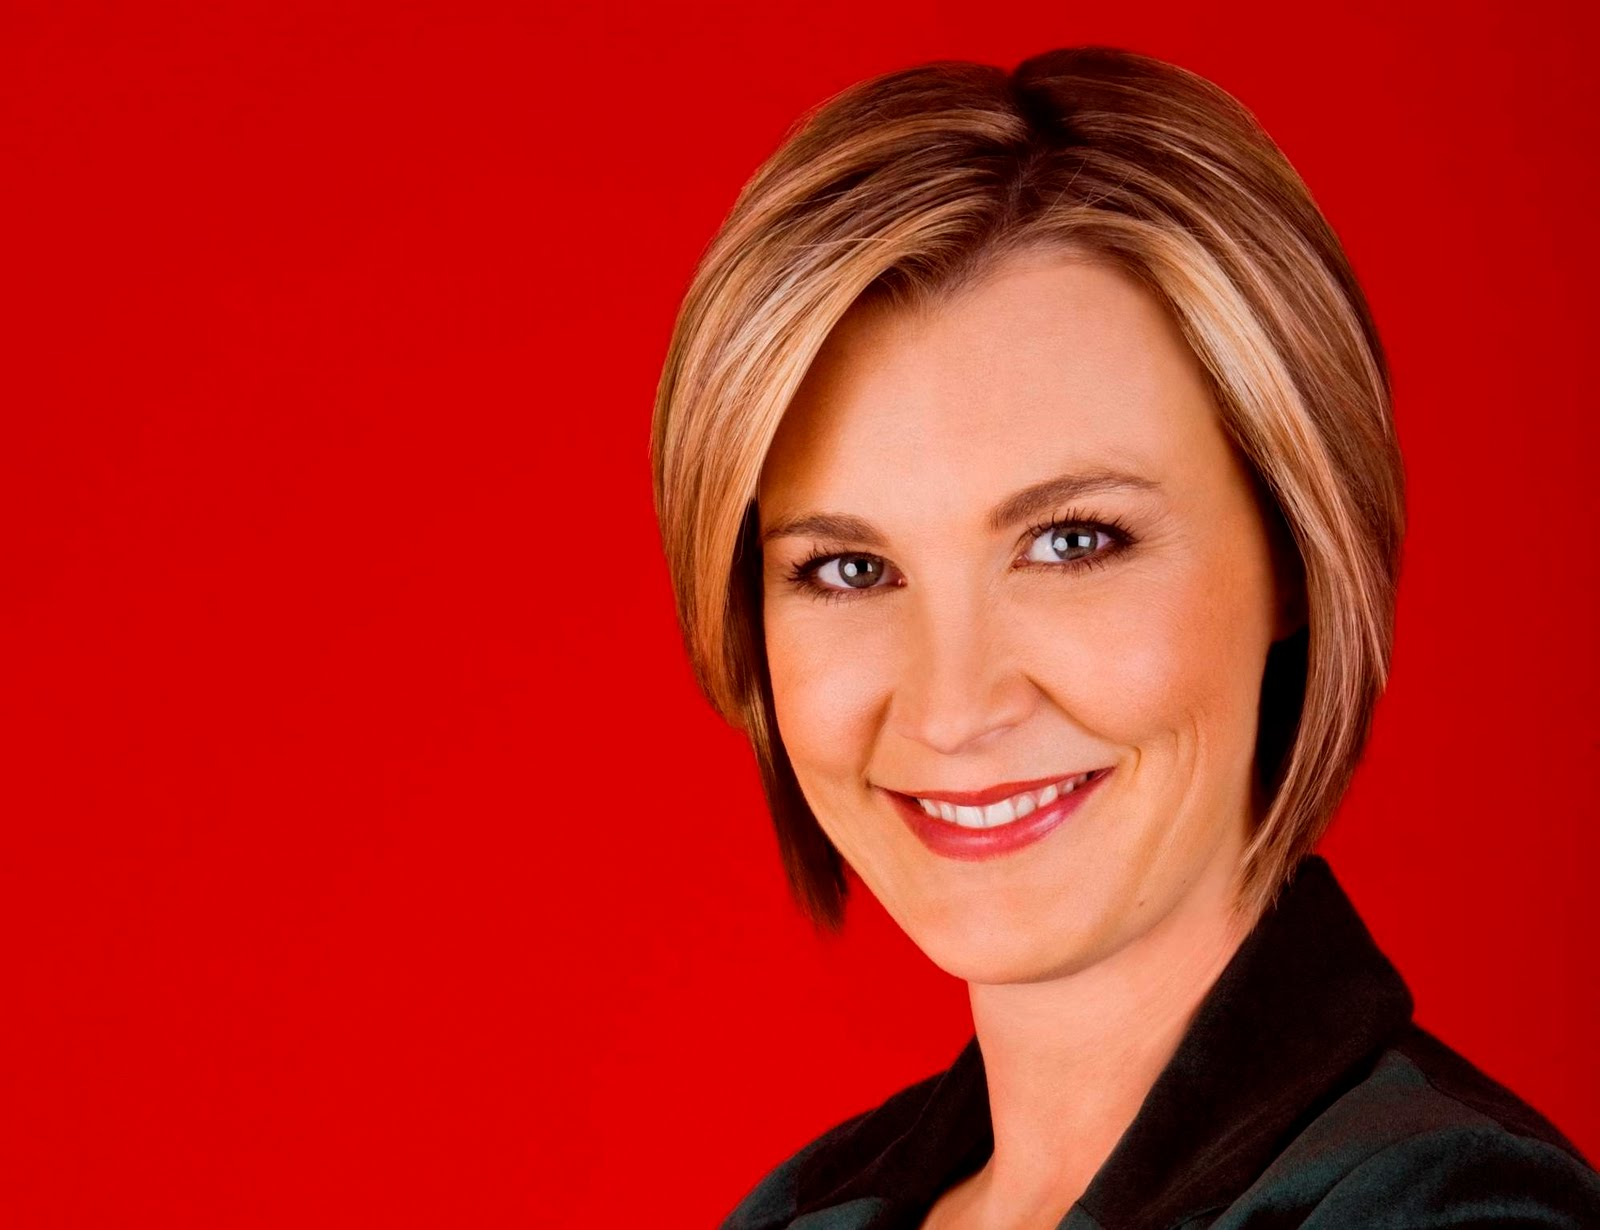 Robyn Curnow, anchor of the new CNN Marketplace Africa